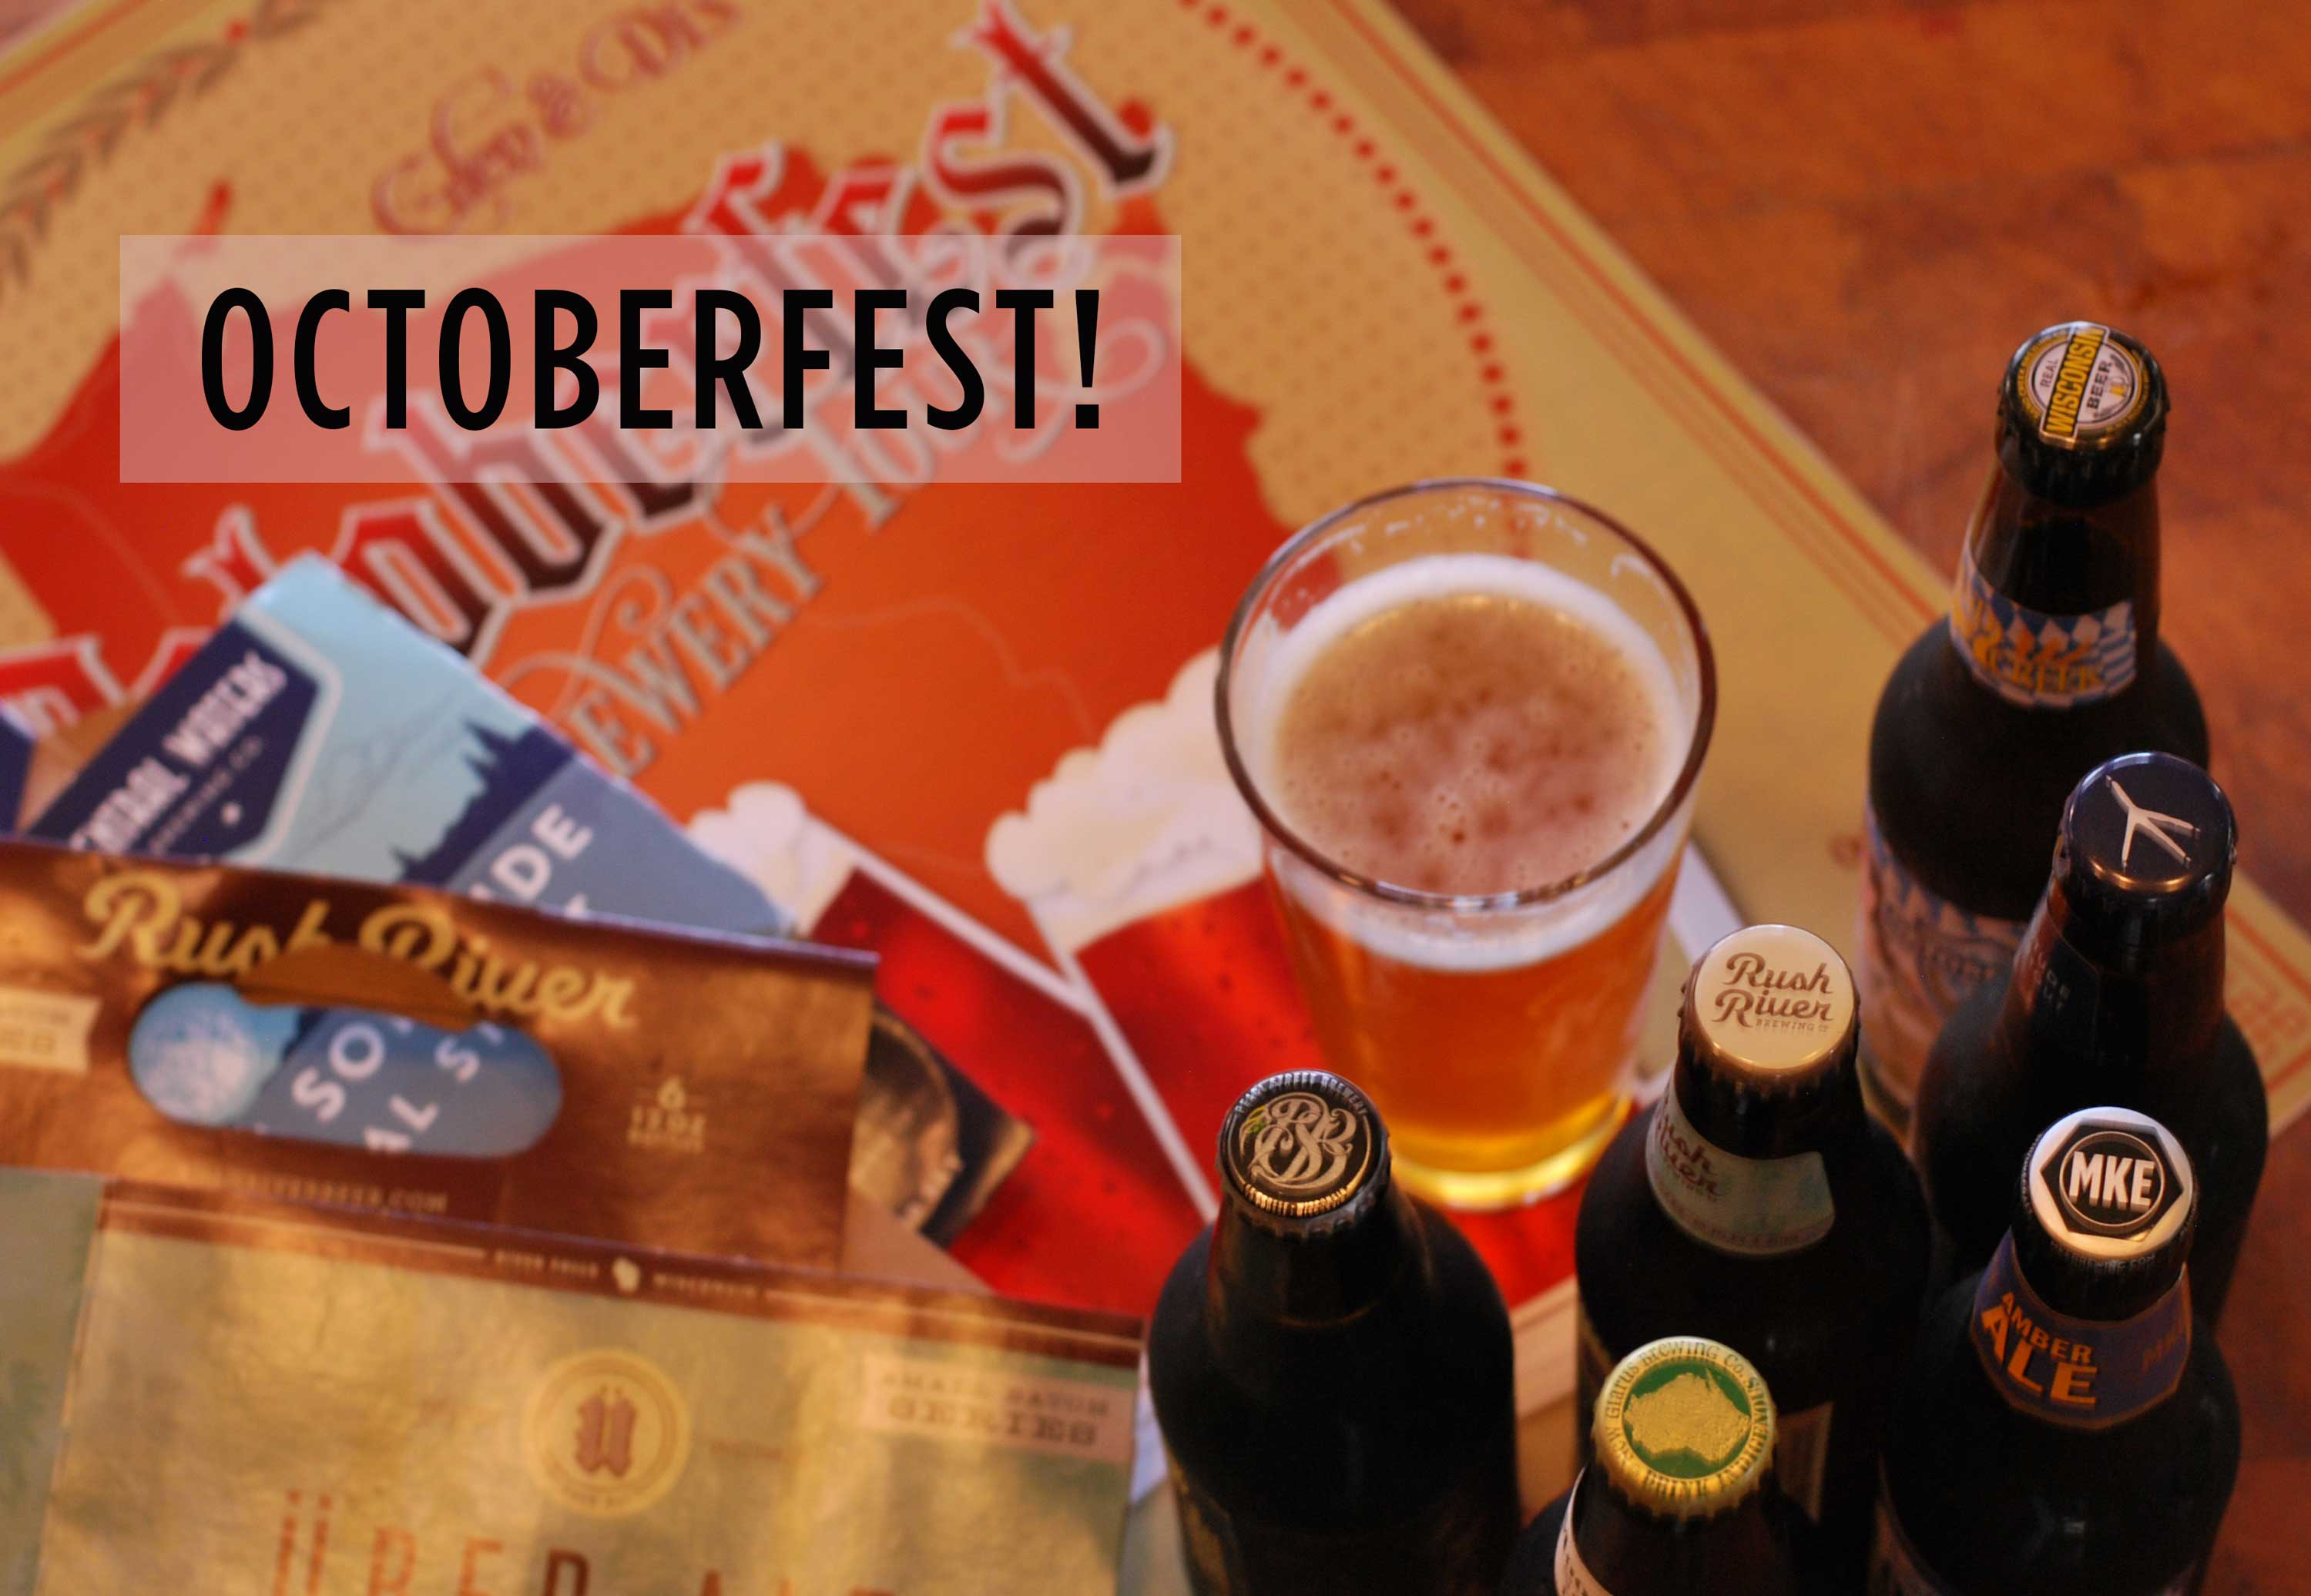 Octoberfest Brewery Tour: Celebrating Midwest Breweries